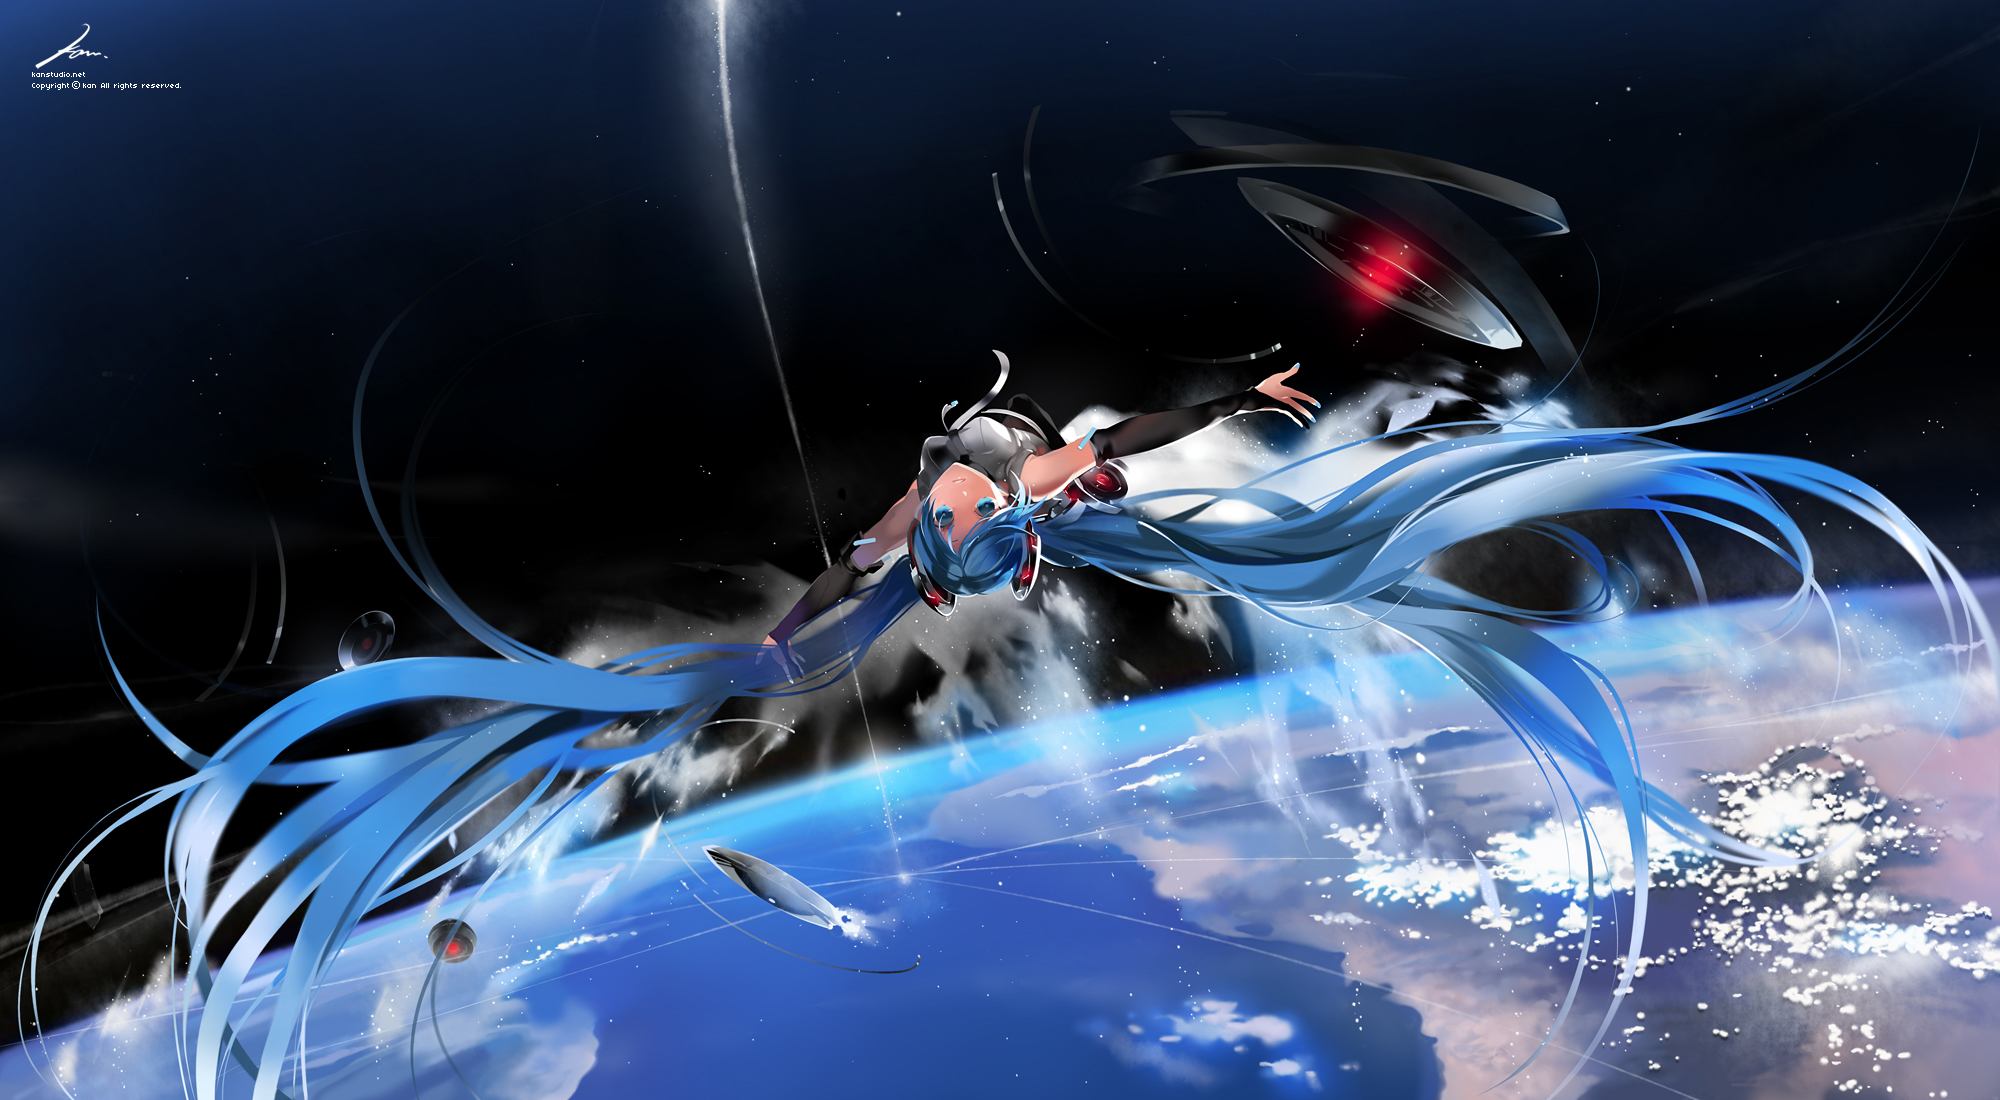 blue_eyes blue_hair hatsune_miku kaninn long_hair miku_append space stars tie twintails vocaloid